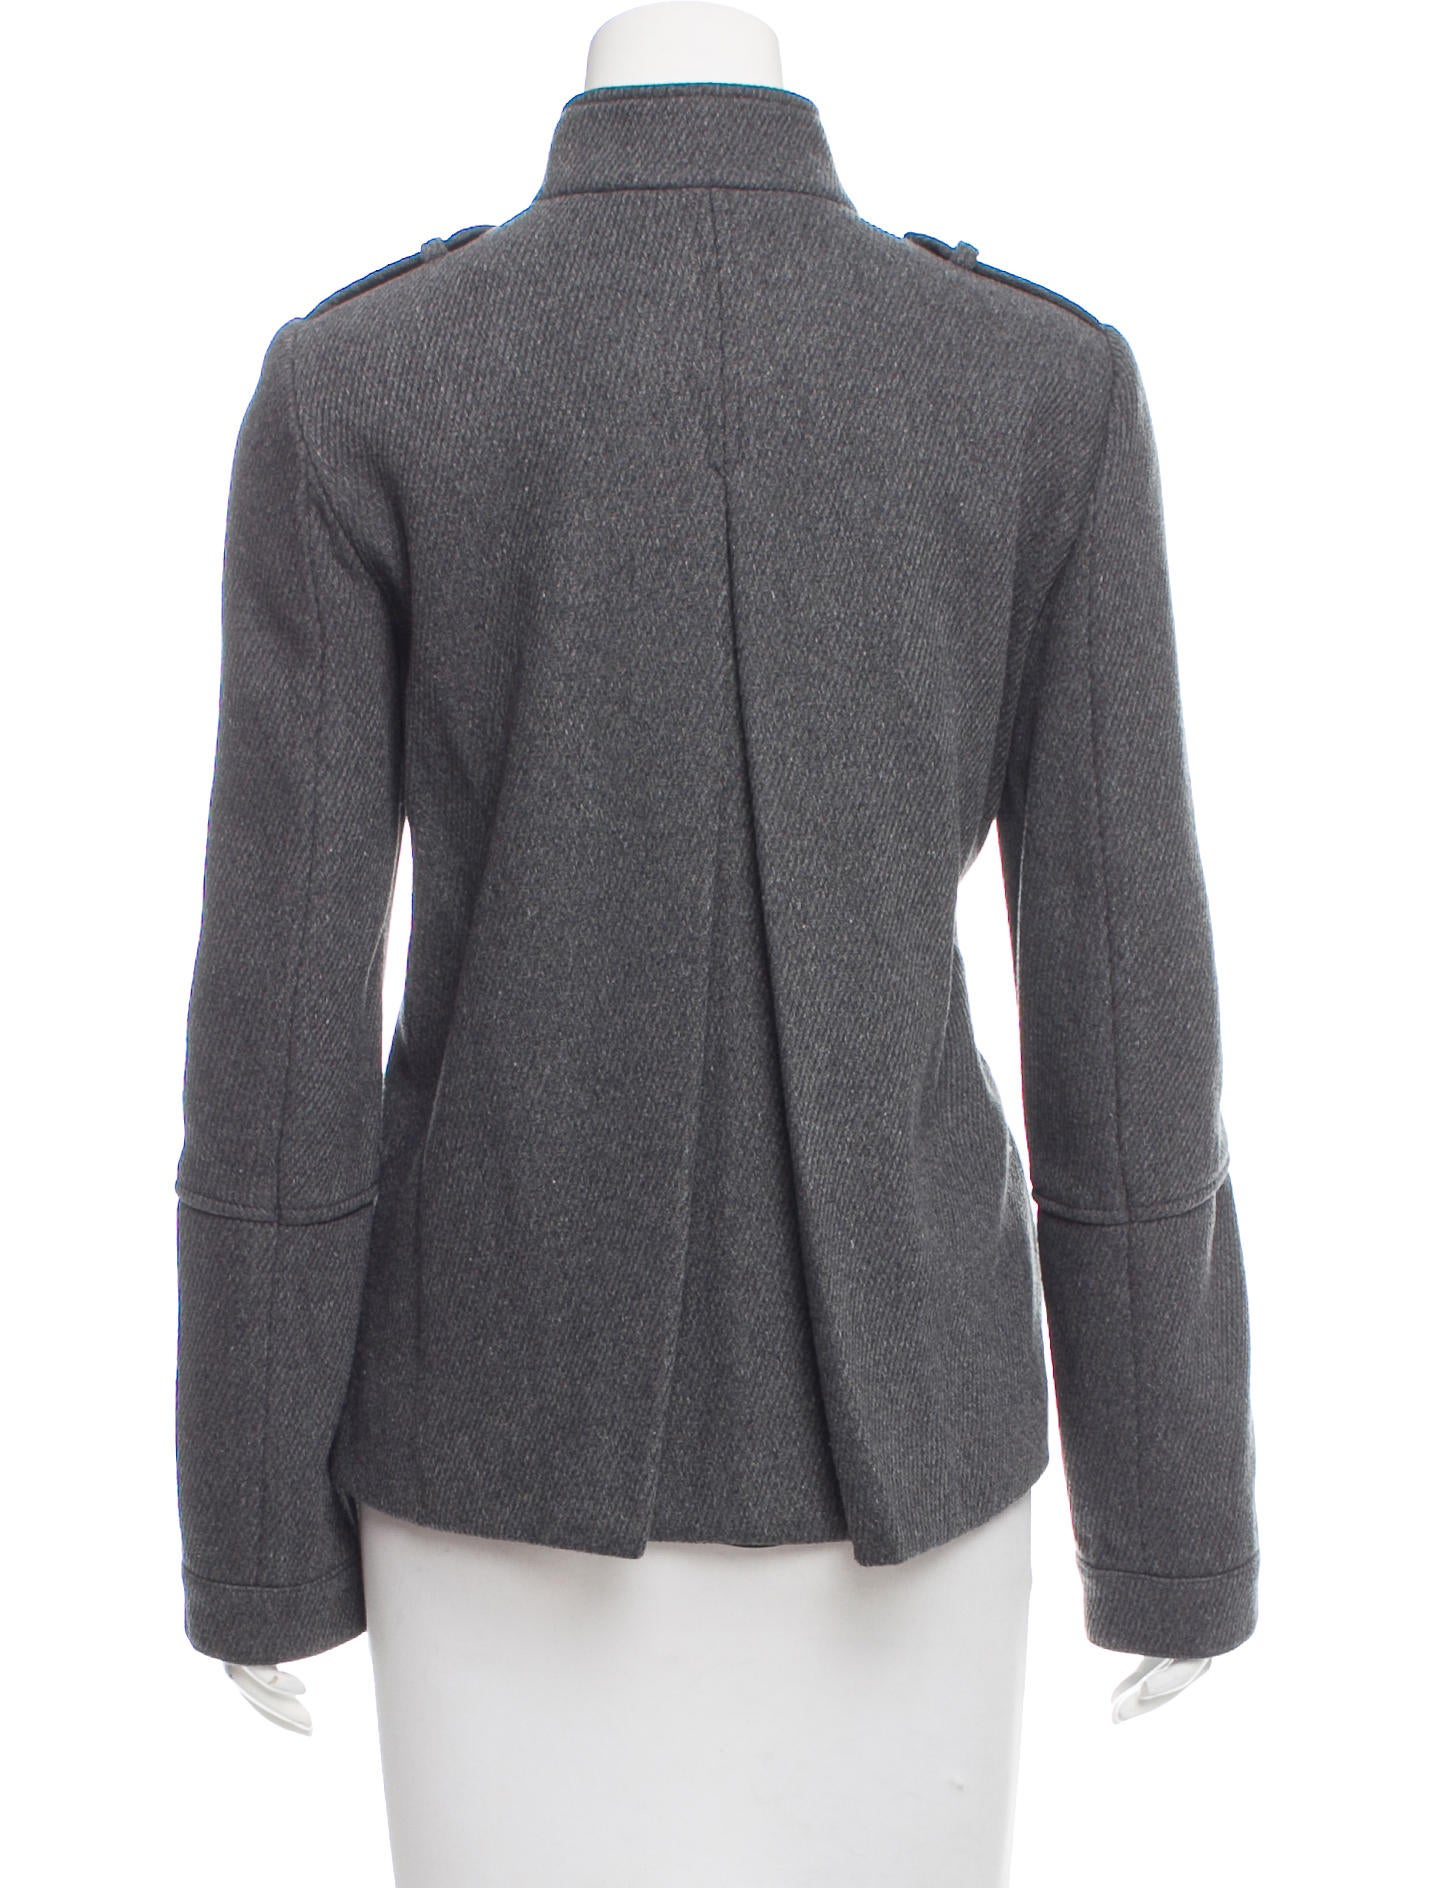 Vince Wool Zip Up Jacket w Tags Clothing WVN28379  : WVN283793enlarged from www.therealreal.com size 1431 x 1888 jpeg 261kB